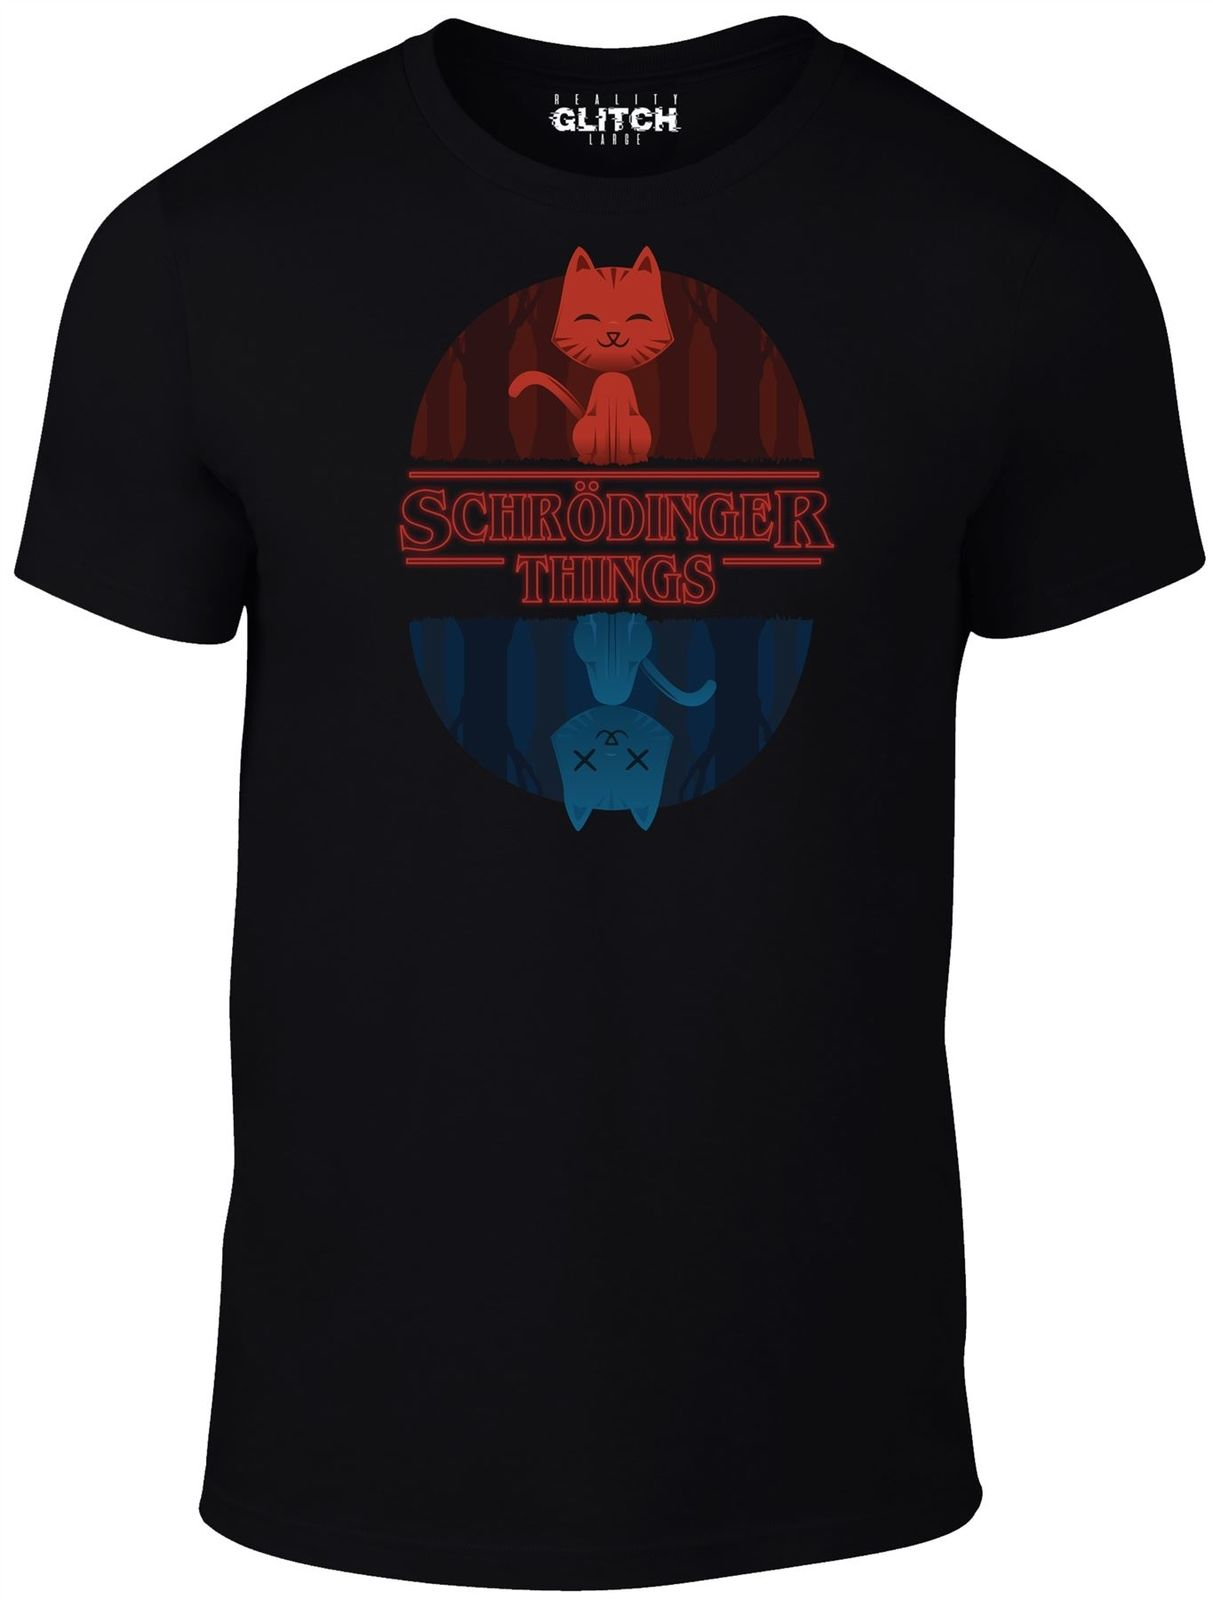 Glitch Men 39 s Schrodinger Things T ShirtNew T Shirts Funny Tops Tee New Unisex Funny High Quality Casual Printing in T Shirts from Men 39 s Clothing